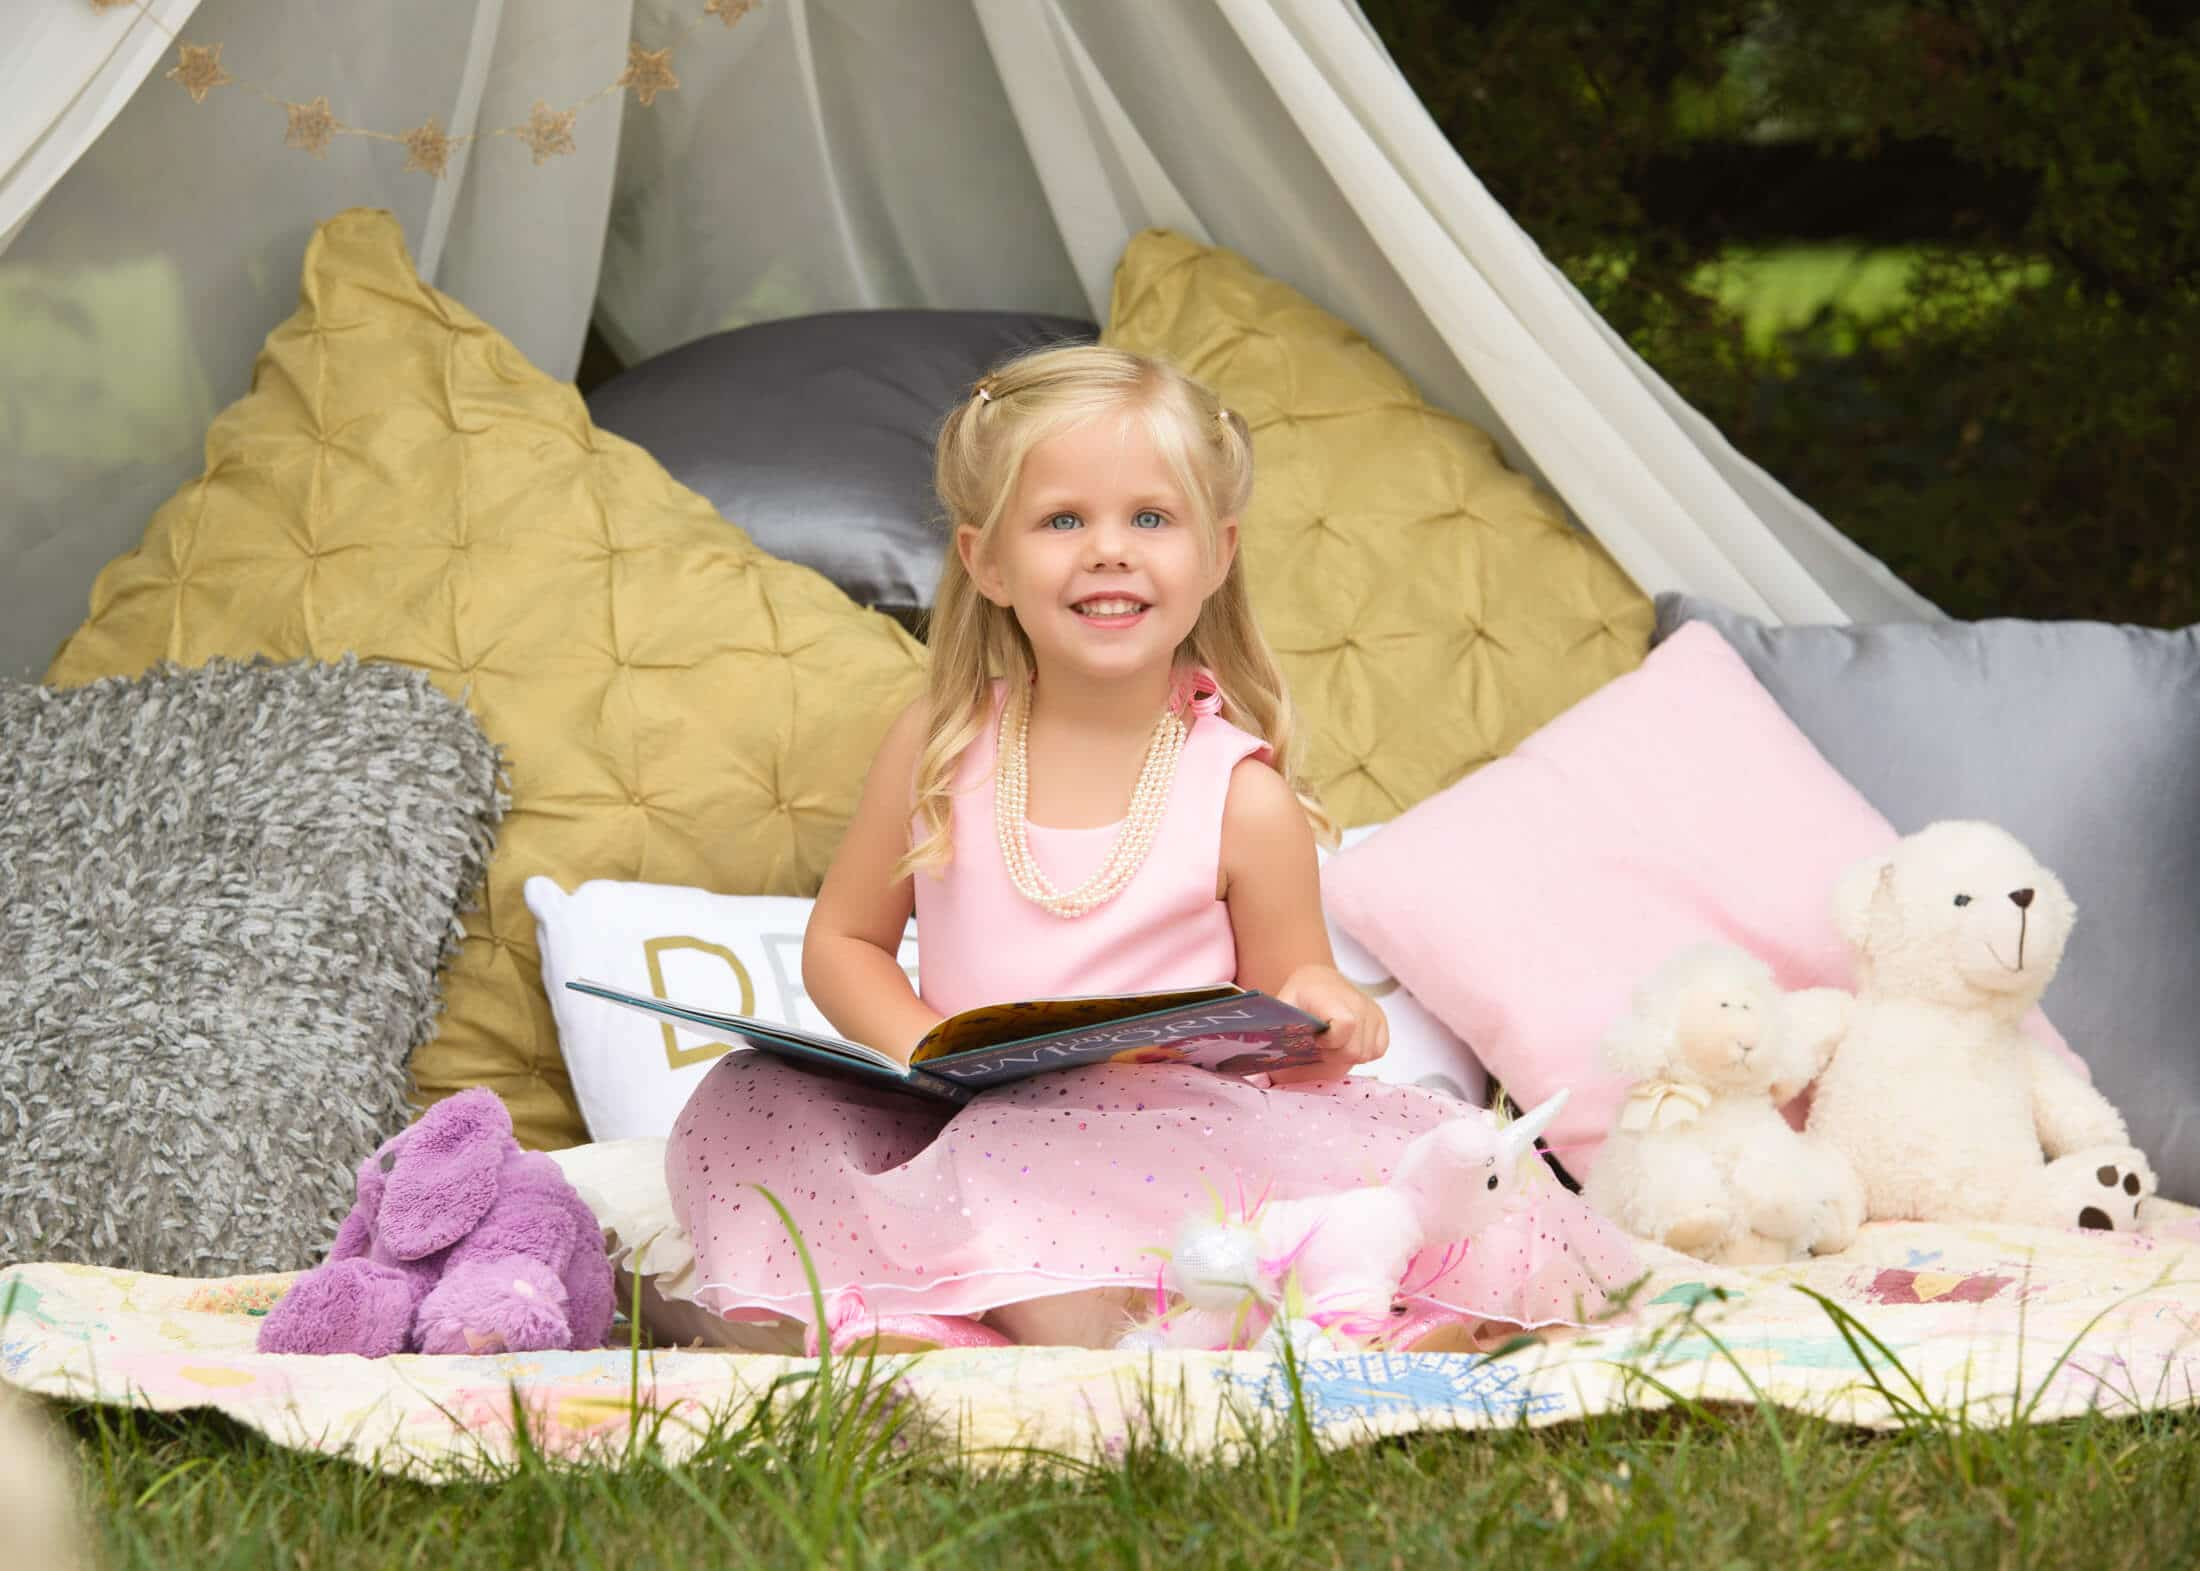 child portrait outdoor tent reading